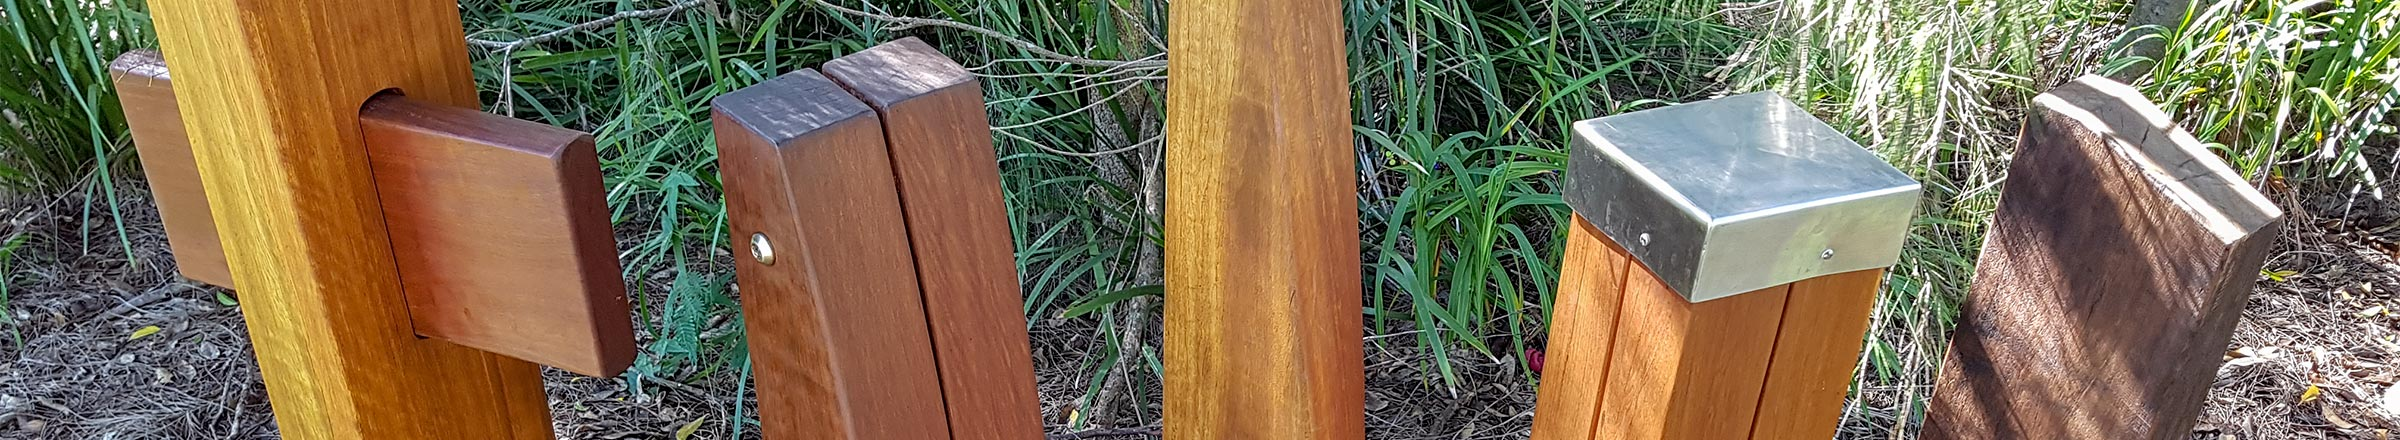 Timber Bollards from Outdoor Structures Australia